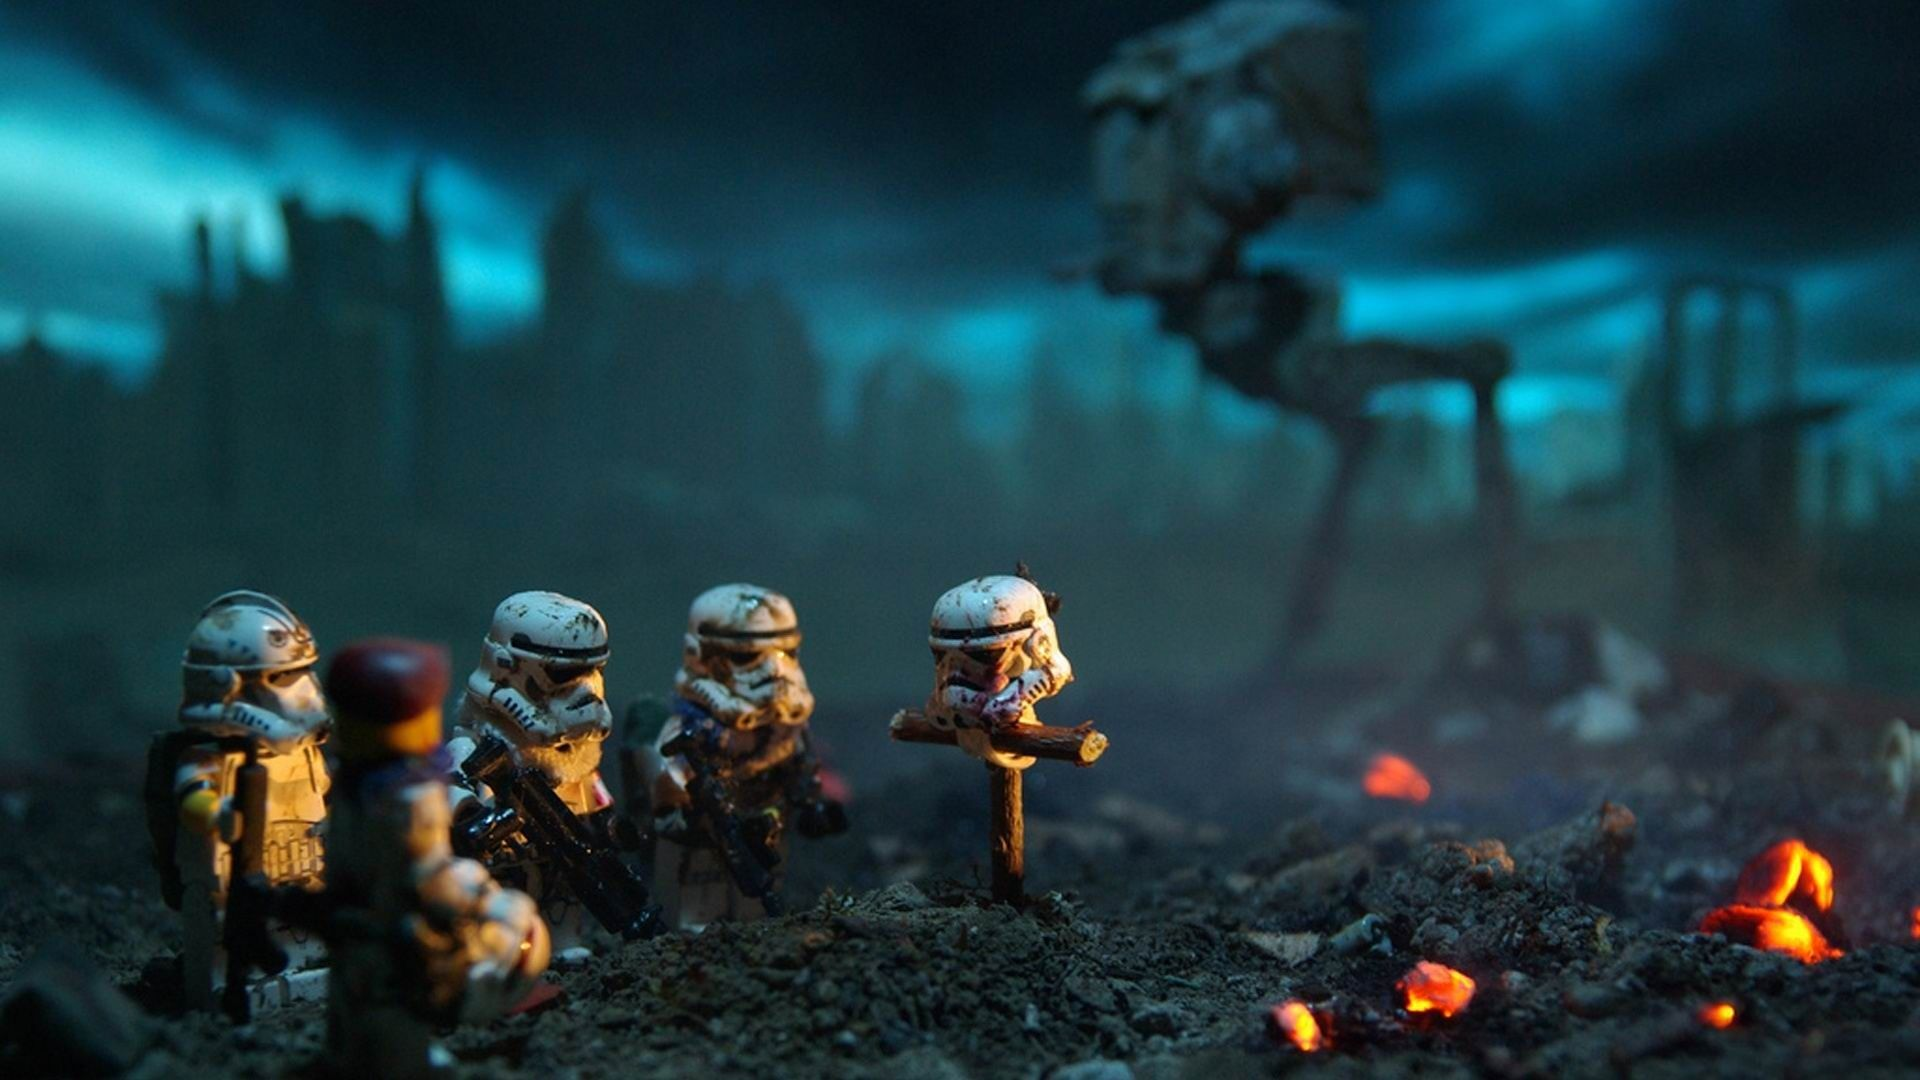 image for cool star wars lego wallpaper hd 425 backgrounds for